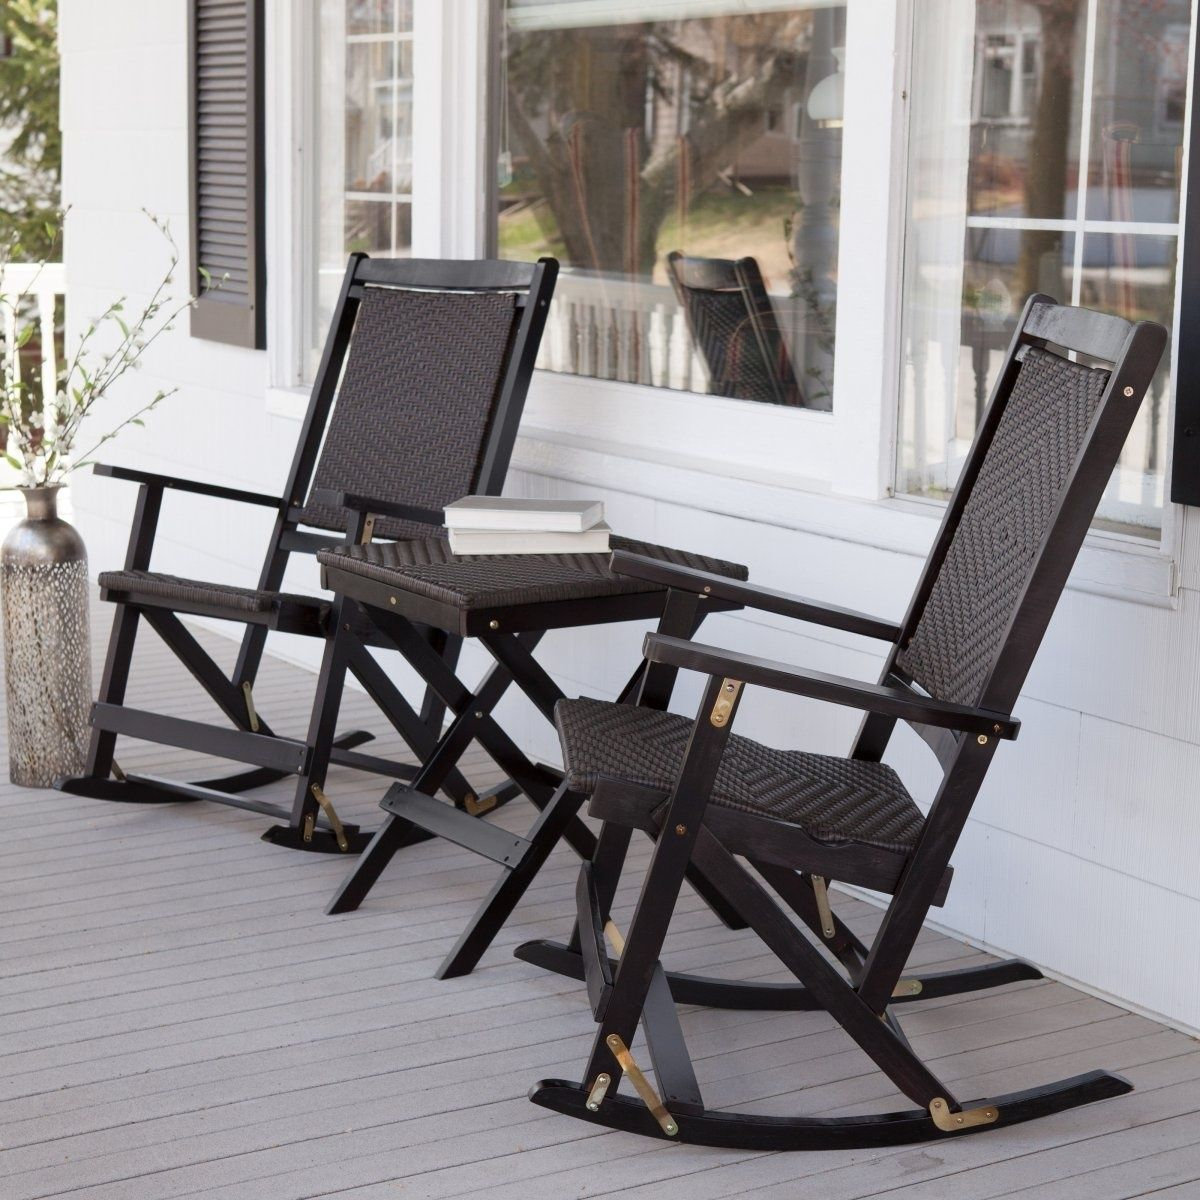 Beautiful Porch Table And Chairs Rt081m2 Patio Rocking Chairs